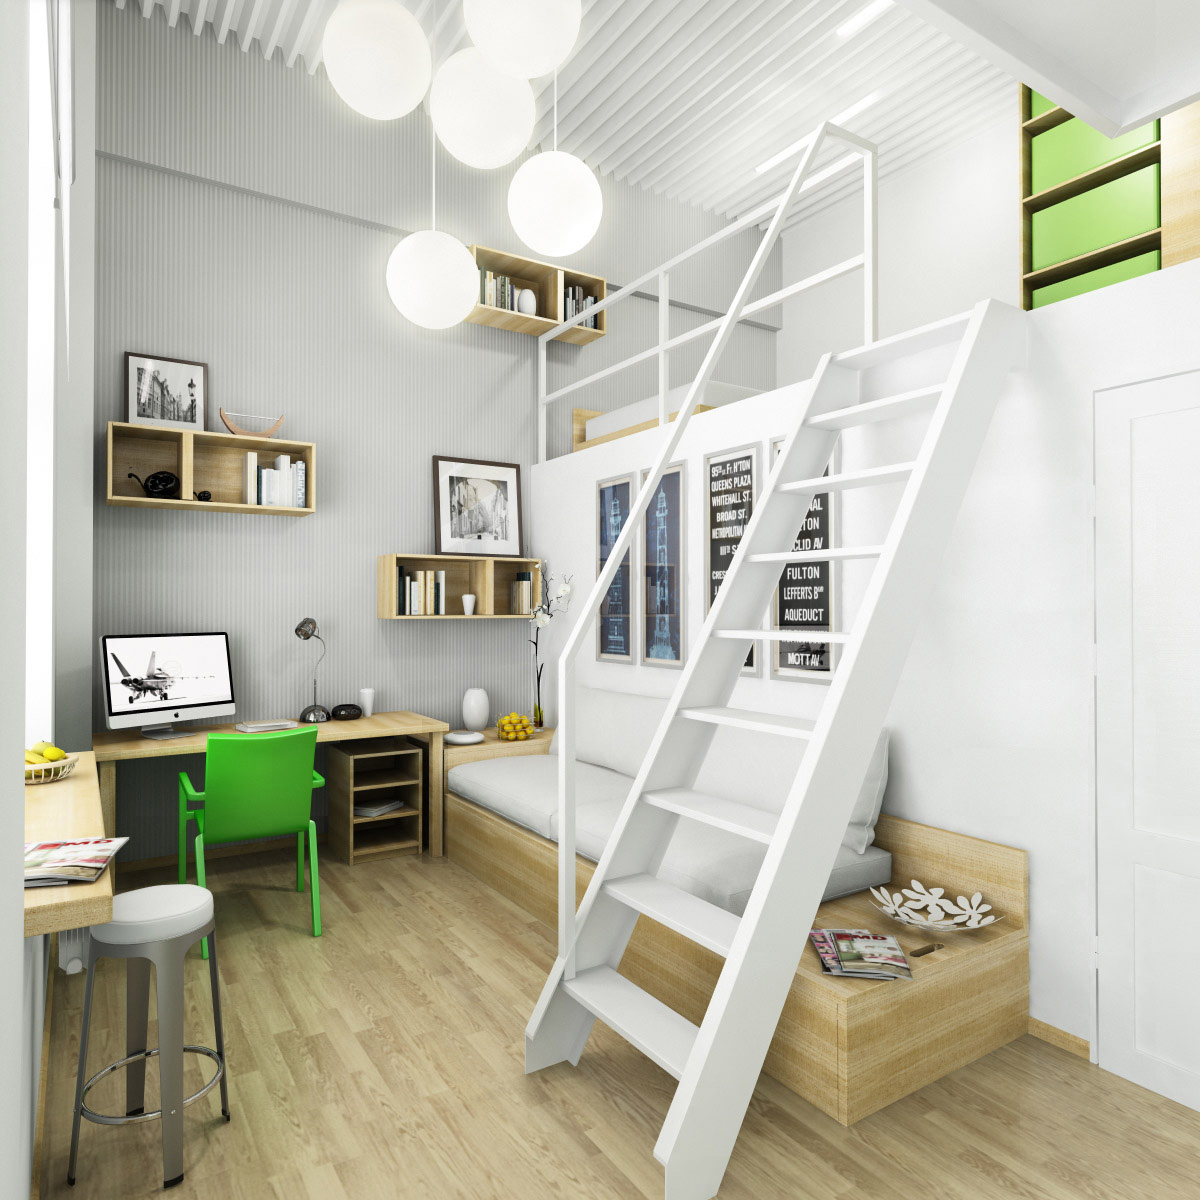 Teen workspaces - Mezzanine bedlamp ...